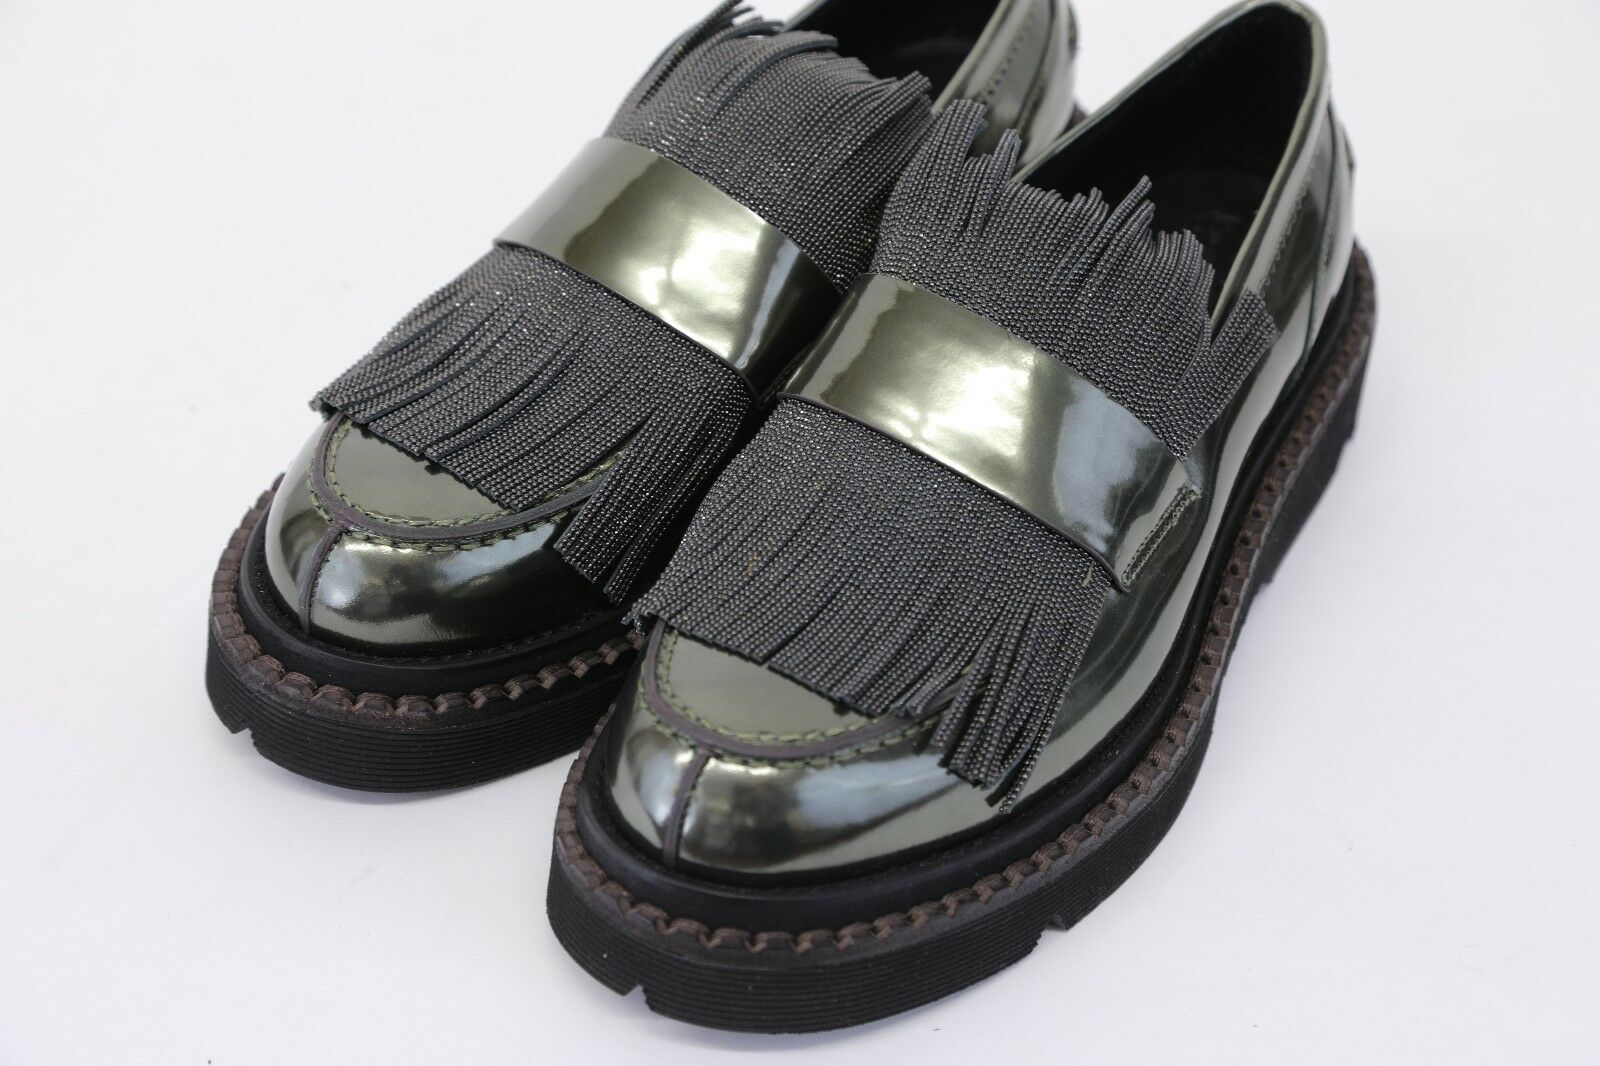 NWOB$2095 Brunello Cucinelli Metallic Leather Beaded Loafers Fringe Loafers Beaded 40/10US A181 82b9ba